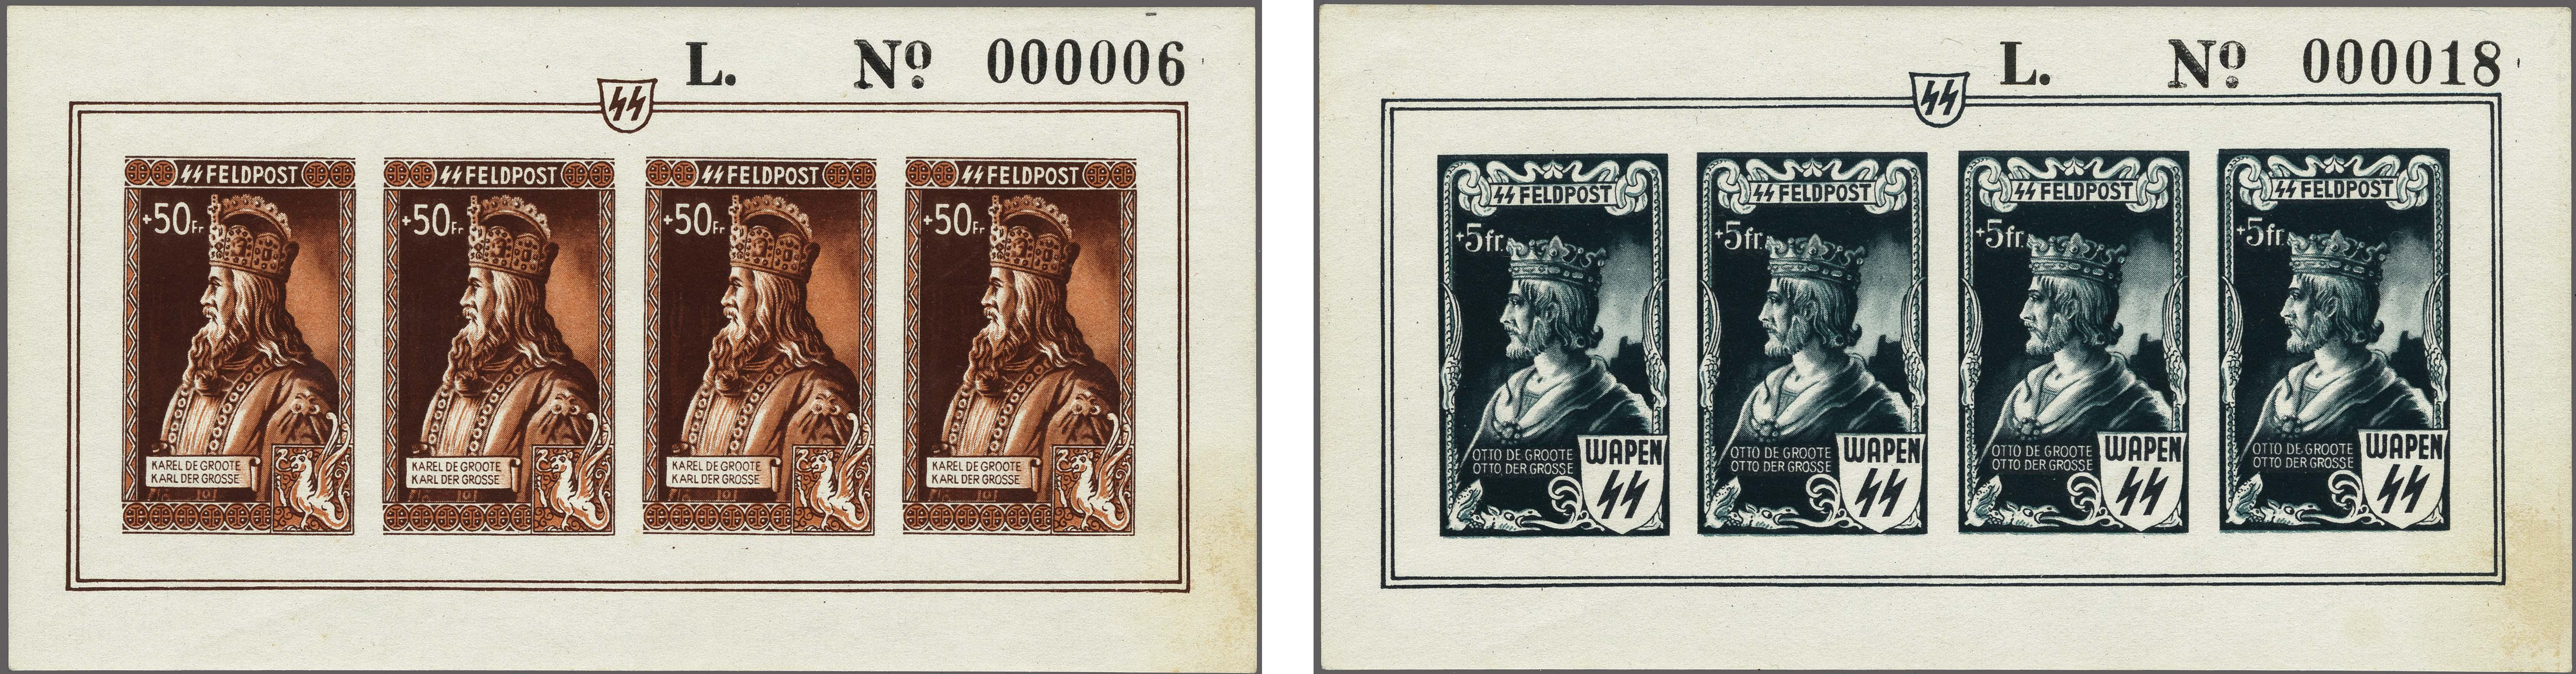 Lot 21 - Belgium and former colonies Belgium -  Corinphila Veilingen Auction 250-253 - Day 1 - Foreign countries